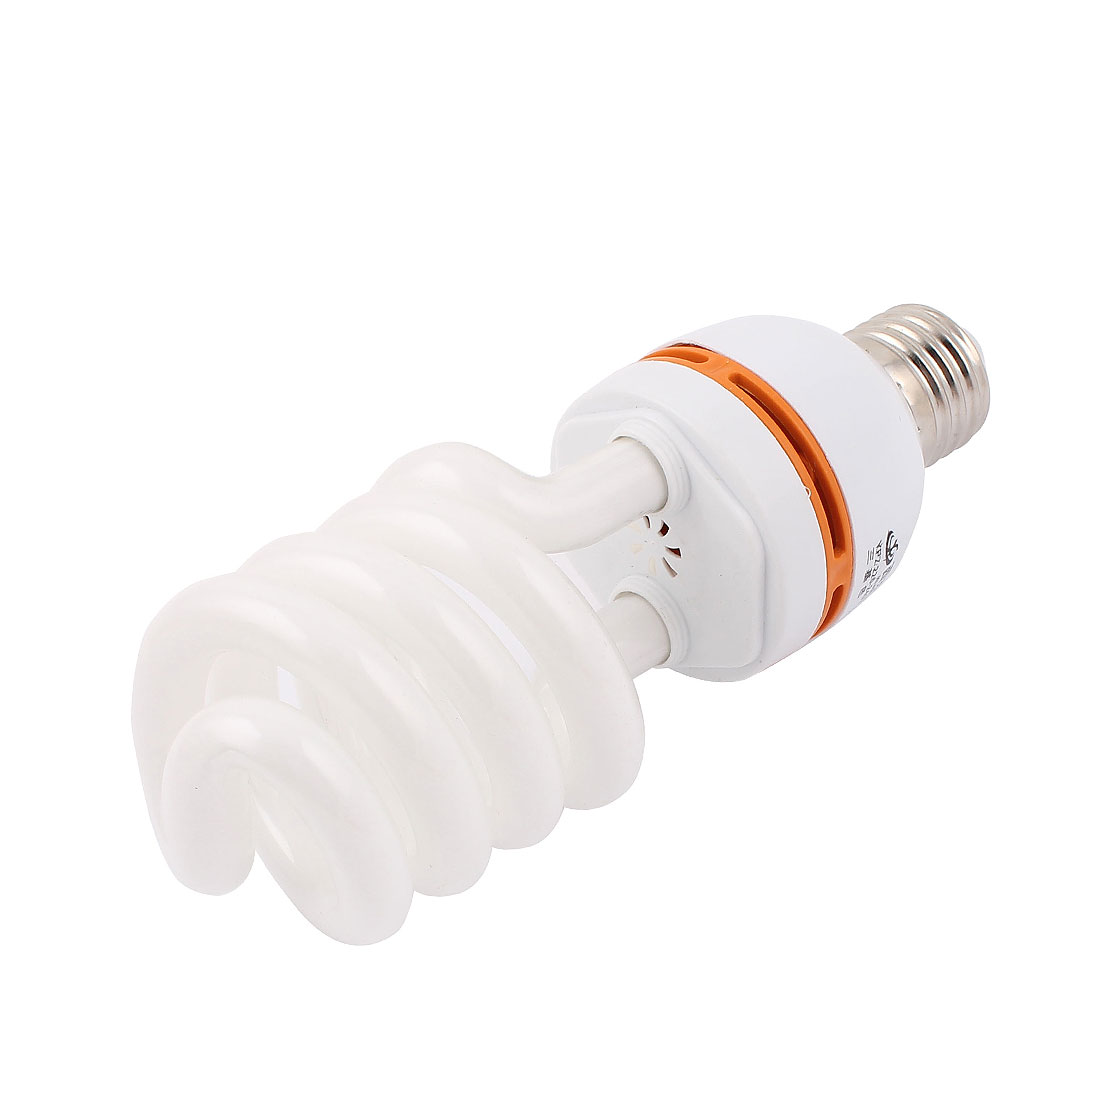 AC 170-240V 40W E27 Screw Office White Fluorescent Lamp Spiral Bulb